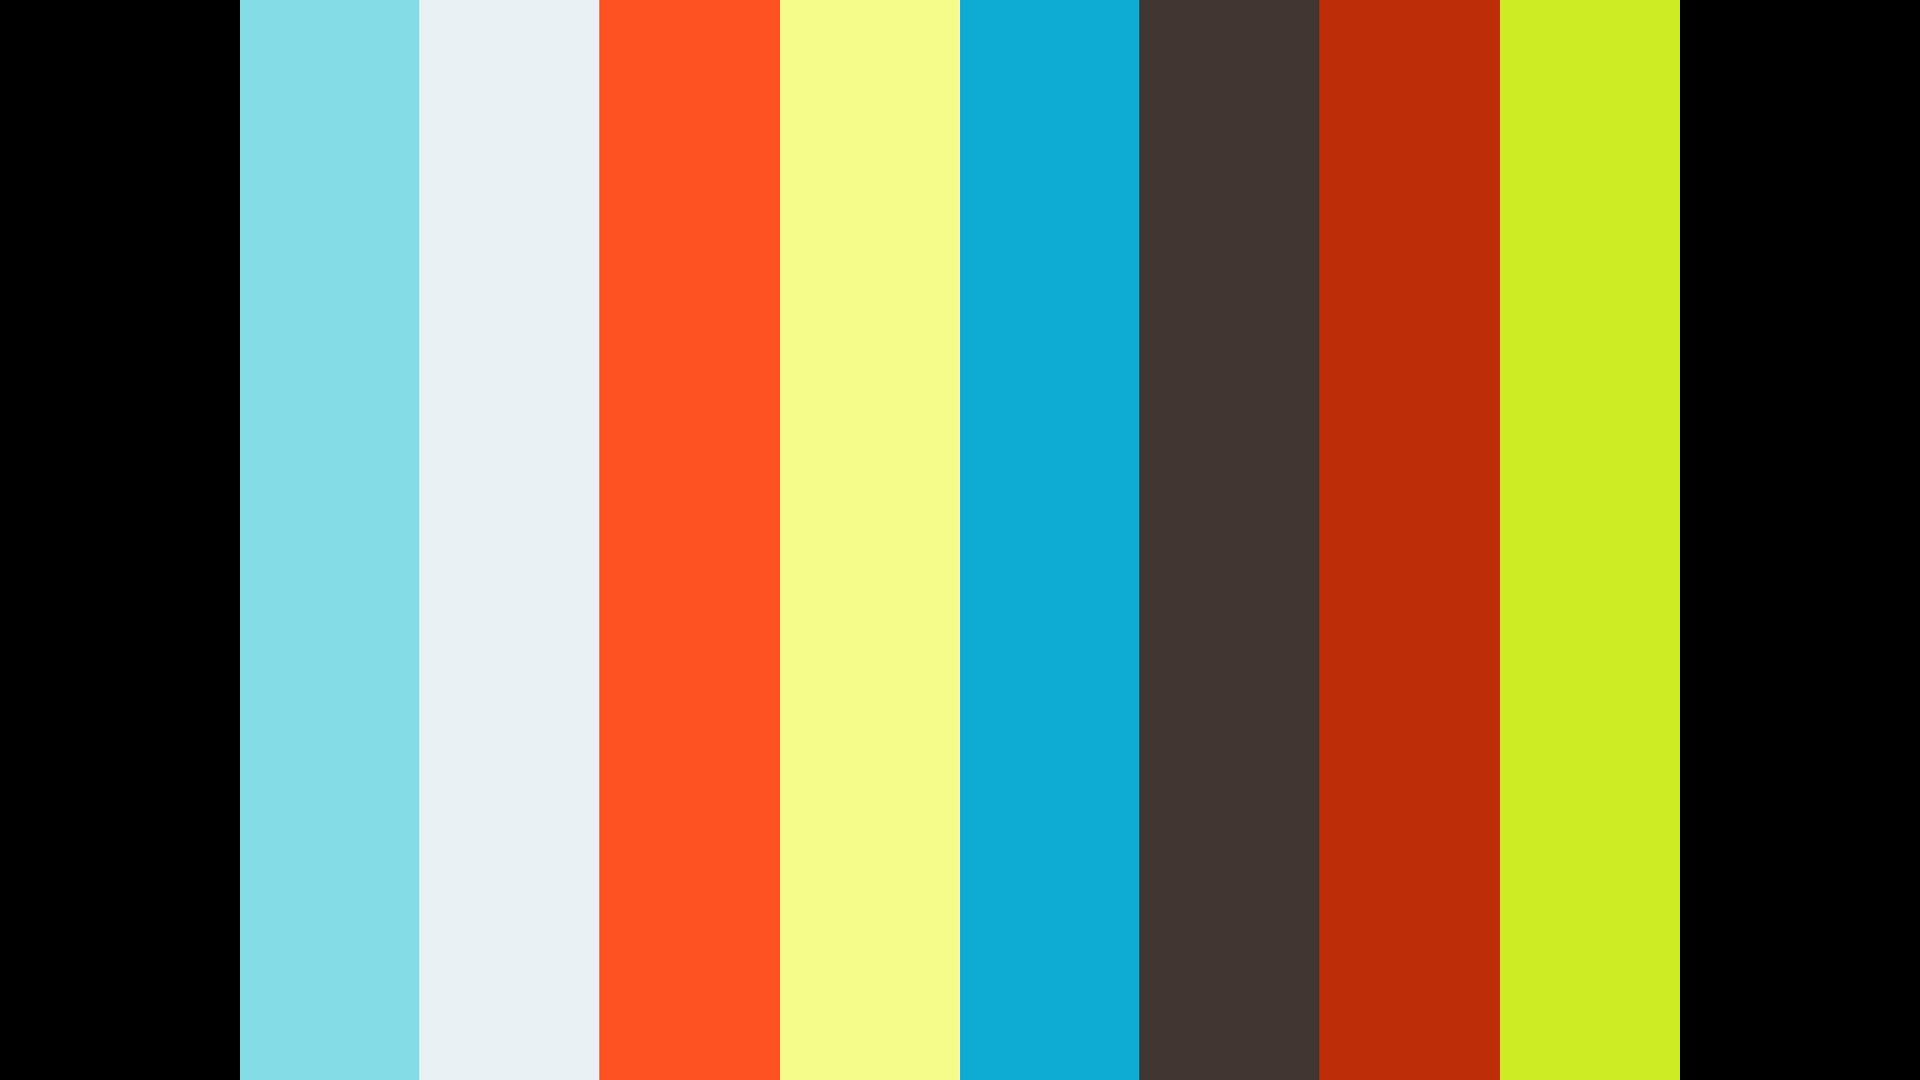 Overview of Districts Nationwide